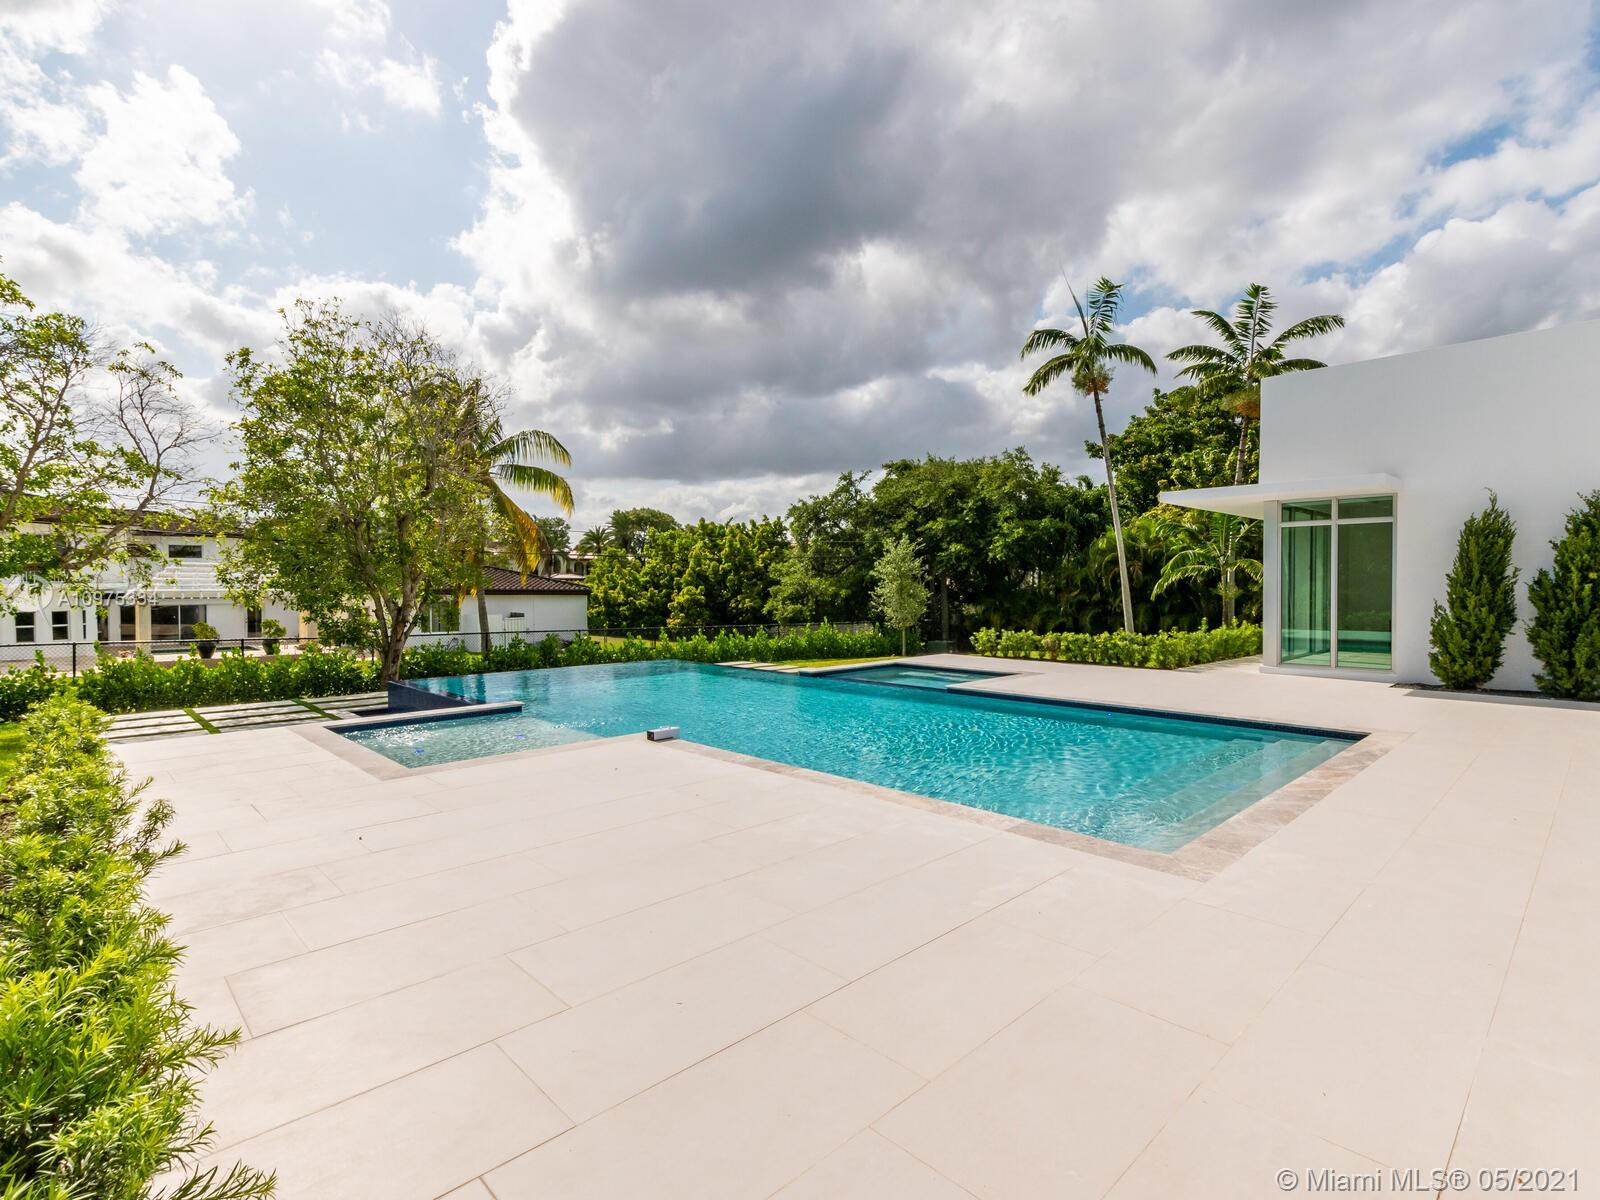 12200 Old Cutler Rd, Pinecrest, Florida 33156, 6 Bedrooms Bedrooms, ,7 BathroomsBathrooms,Residential,For Sale,12200 Old Cutler Rd,A10975334